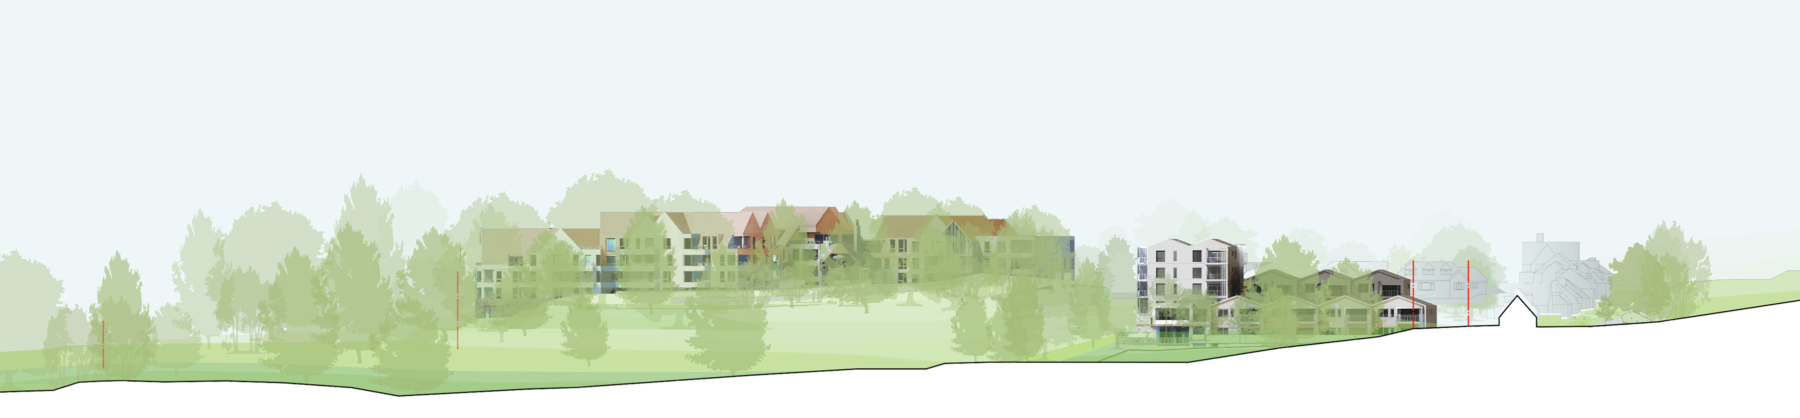 Sarah-Wigglesworth-Architects Sidmouth-Later-Living Plateau-Elevation 3600